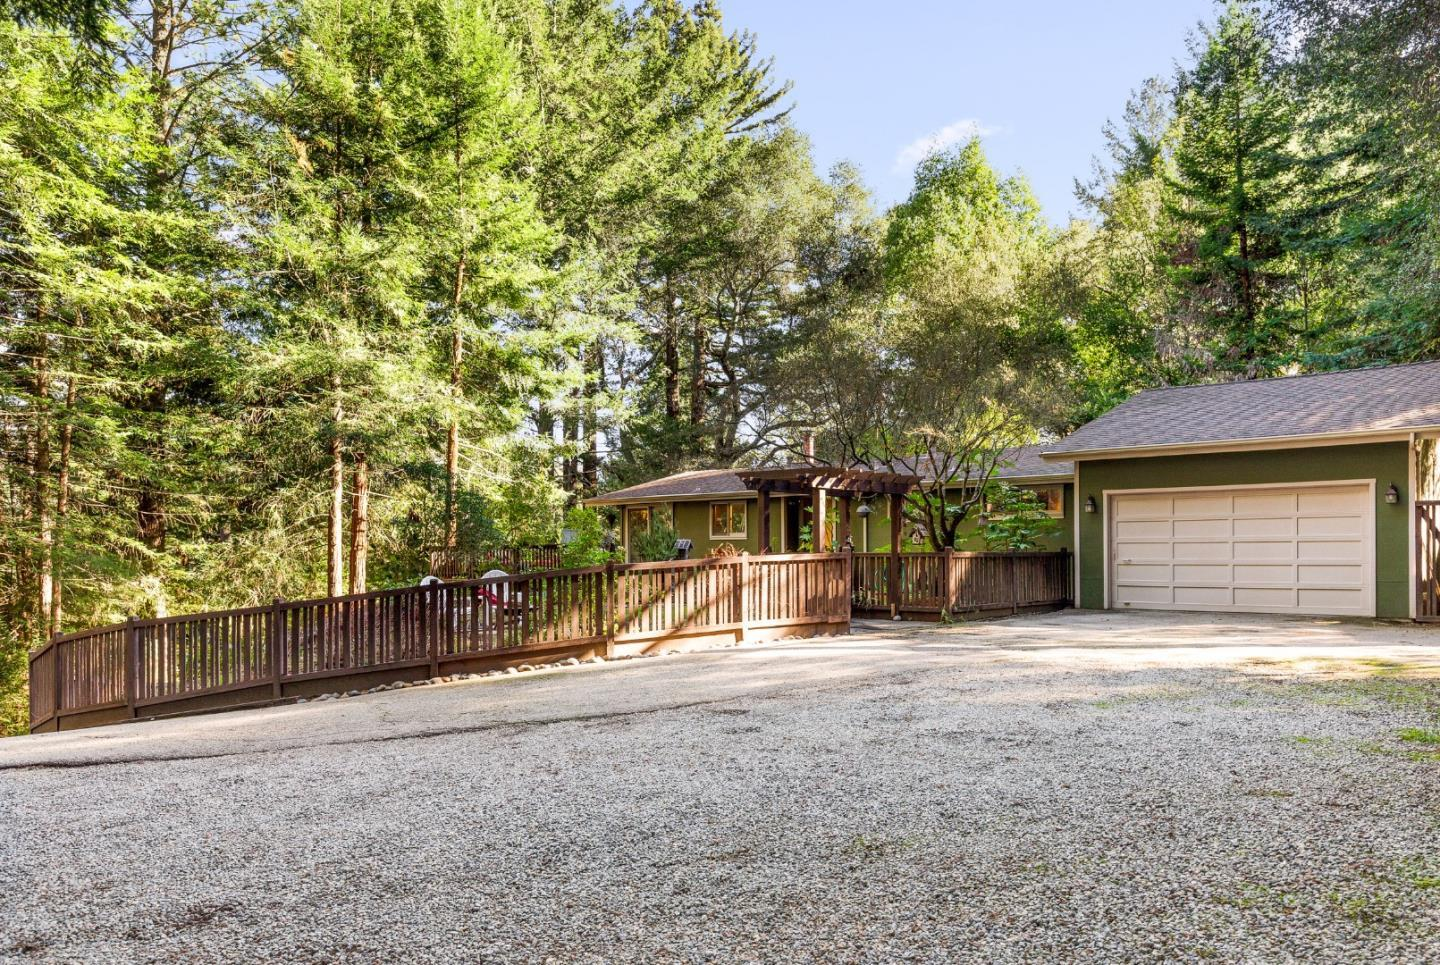 This single-level home nestled in a sunny clearing and surrounded by nearly an acre of forest views with plenty of outdoor space for relaxing and gardening make this spot a private and peaceful haven from the hustle & bustle of modern life, yet so close to everything you need. One of the most private and peaceful properties in the area. The flat lower parcel boasts a large cleared site suitable for a pool, garden, camping, tennis court, or even an ADU. The 2BR/2BA + Office/Den home is well designed with quality, function and style in mind including solid cherry hardwood floors, open-beam vaulted ceilings, and a wraparound deck. At the end of the hallway, you'll find a bonus room with loft suitable to be made into a 3rd BR that integrates perfectly into the home's style and floor plan. Artist Studio / Workshop with electricity hooked up and water available nearby. Local estimate to repair driveway: removal of 5 roots, widen entry for trailer/boat towing, slurry 3,300 SF is about $6,000.